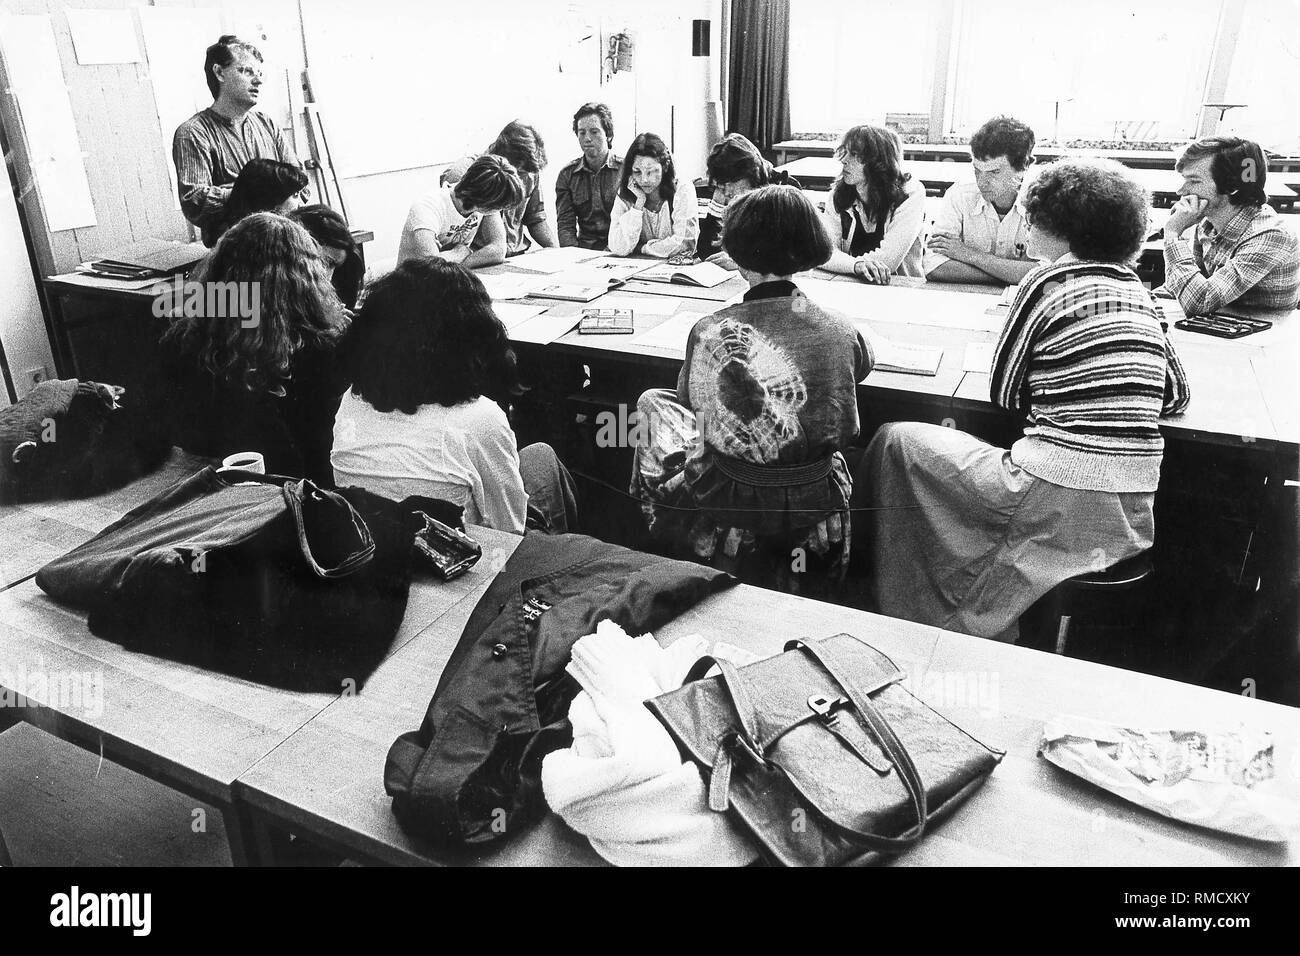 Pupils of the 12th year of the Gesamtschule Muelheim an der Ruhr during a discussion of an art exam. Stock Photo